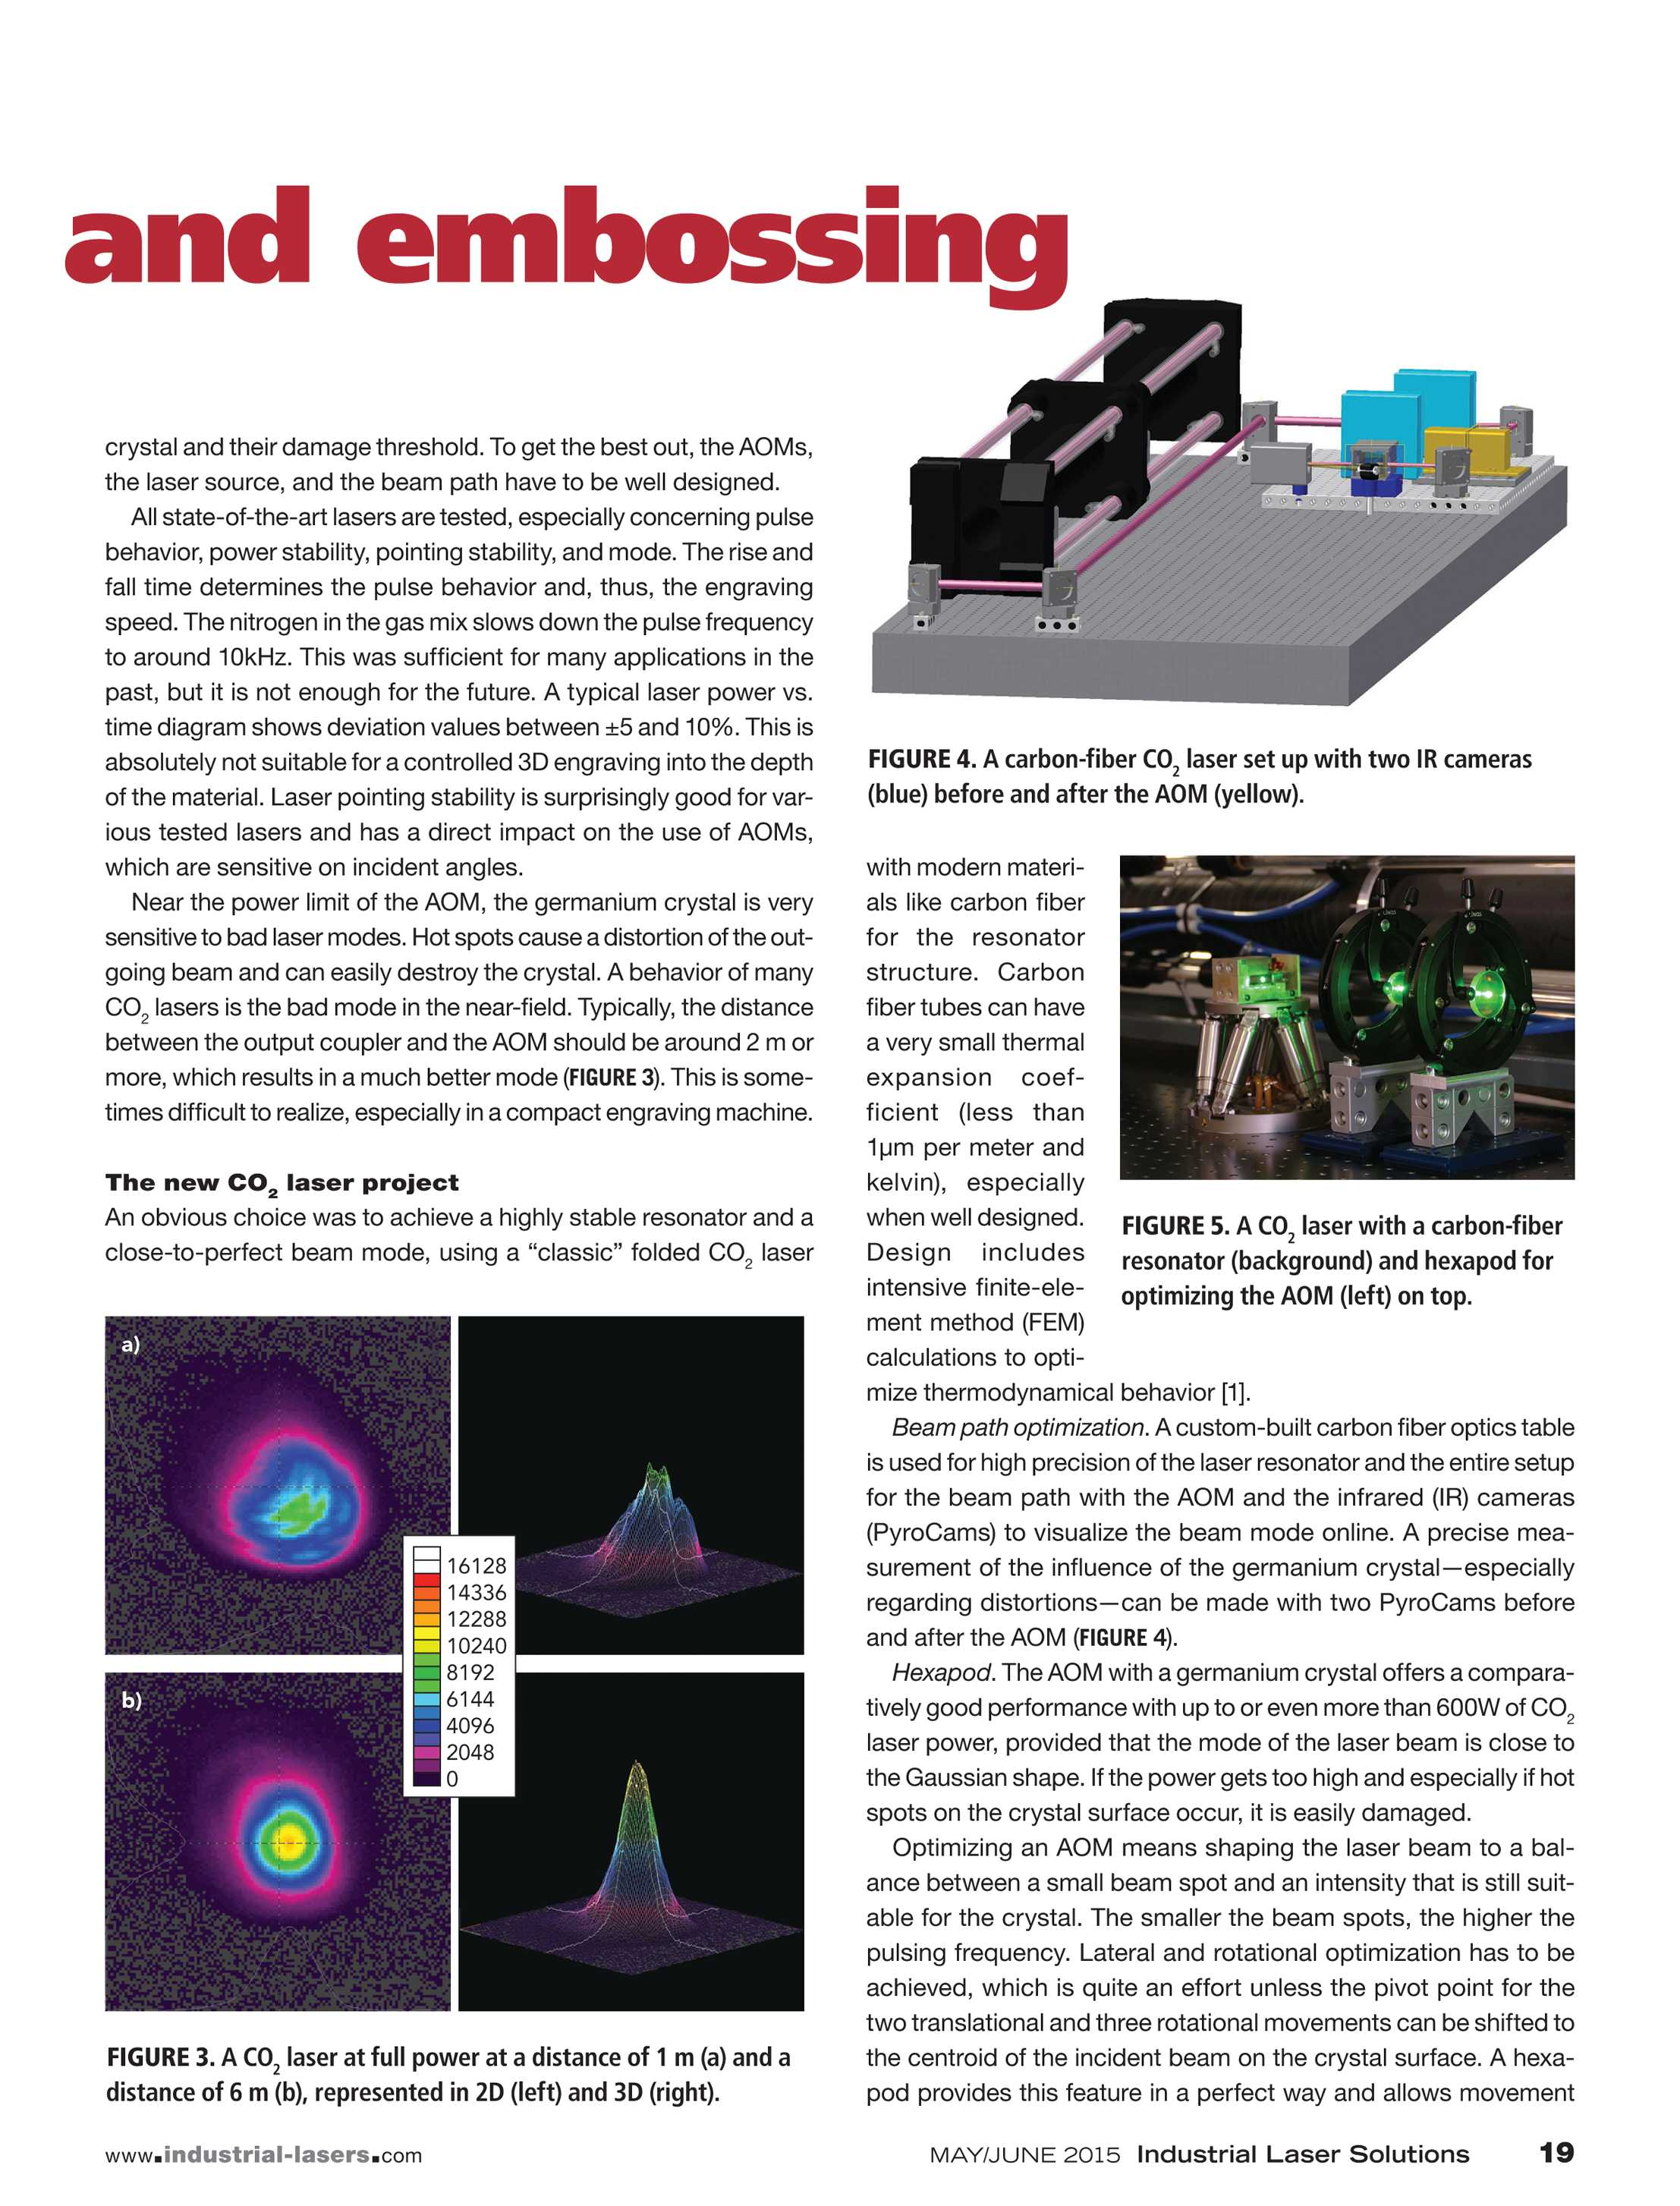 Industrial Laser Solutions - May/June 2015 - page 19